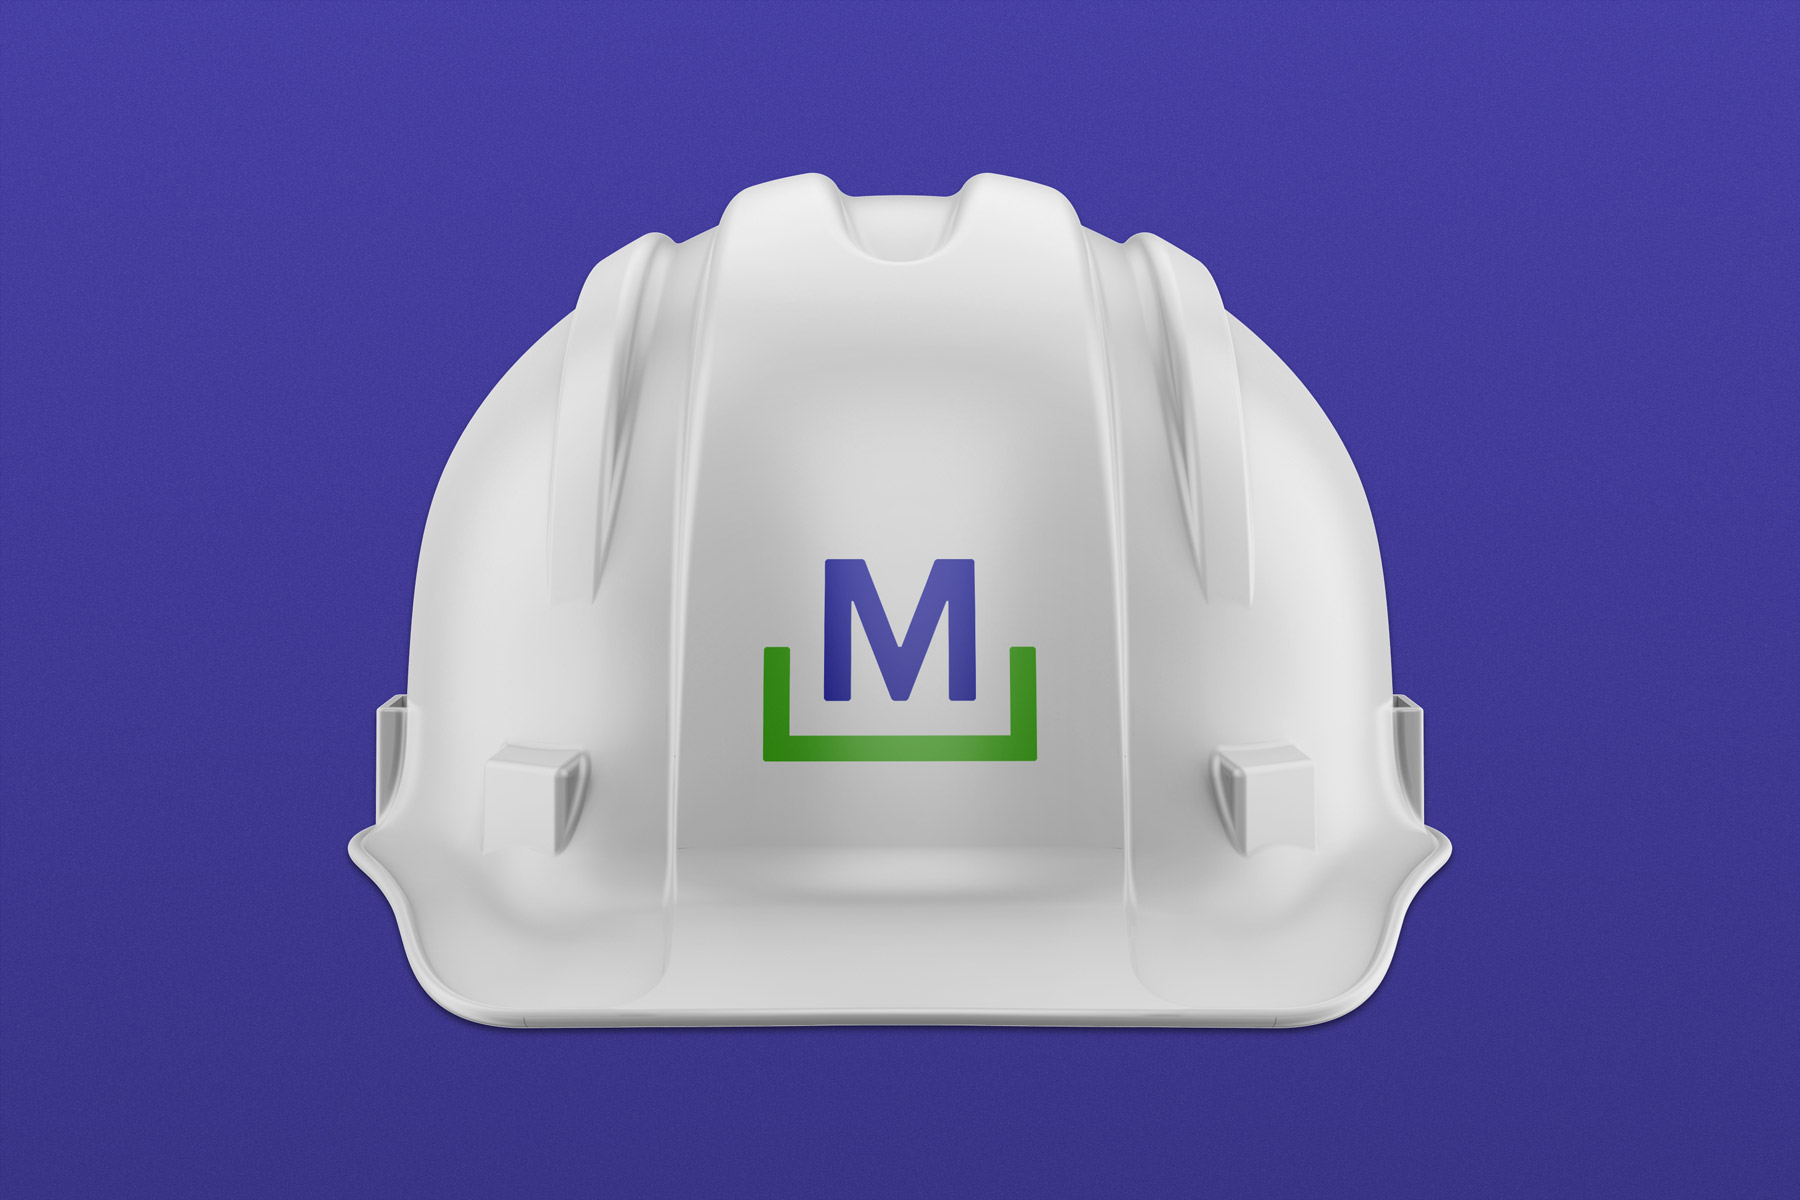 McDermott - Construction Company Logo on a Hardhat